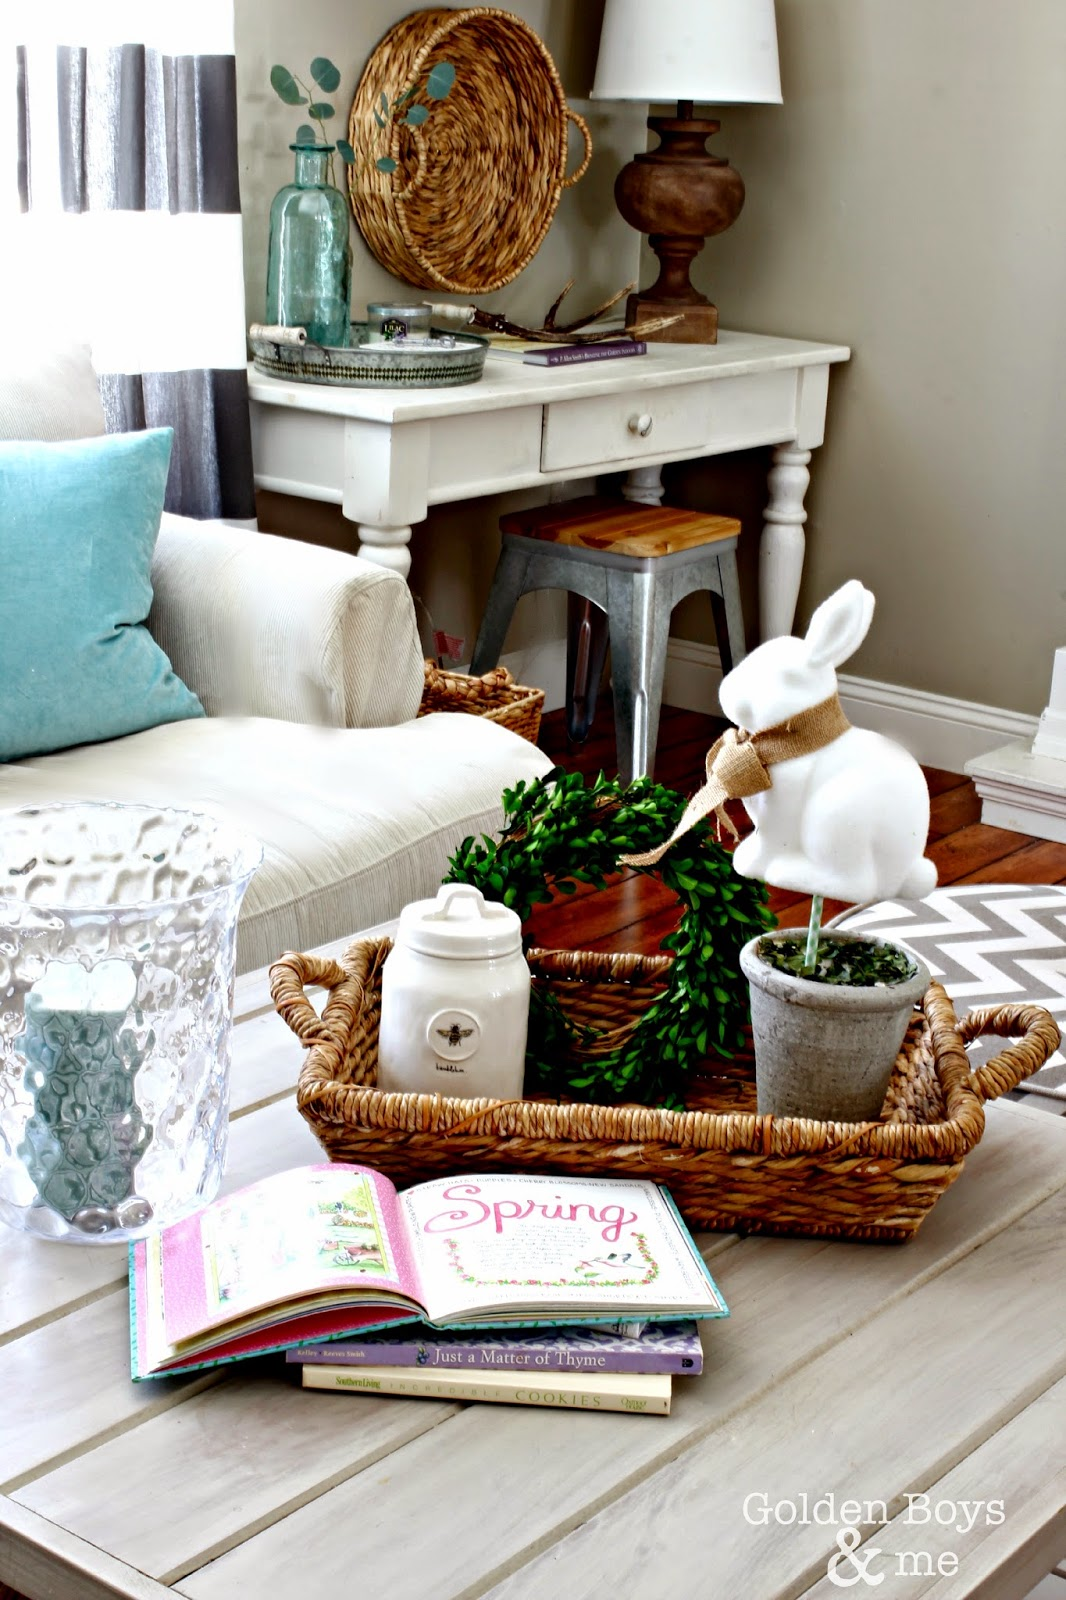 Target Dollar Spot bunny topiary in Smith and Hawken basket with spring decor-www.goldenboysandme.com